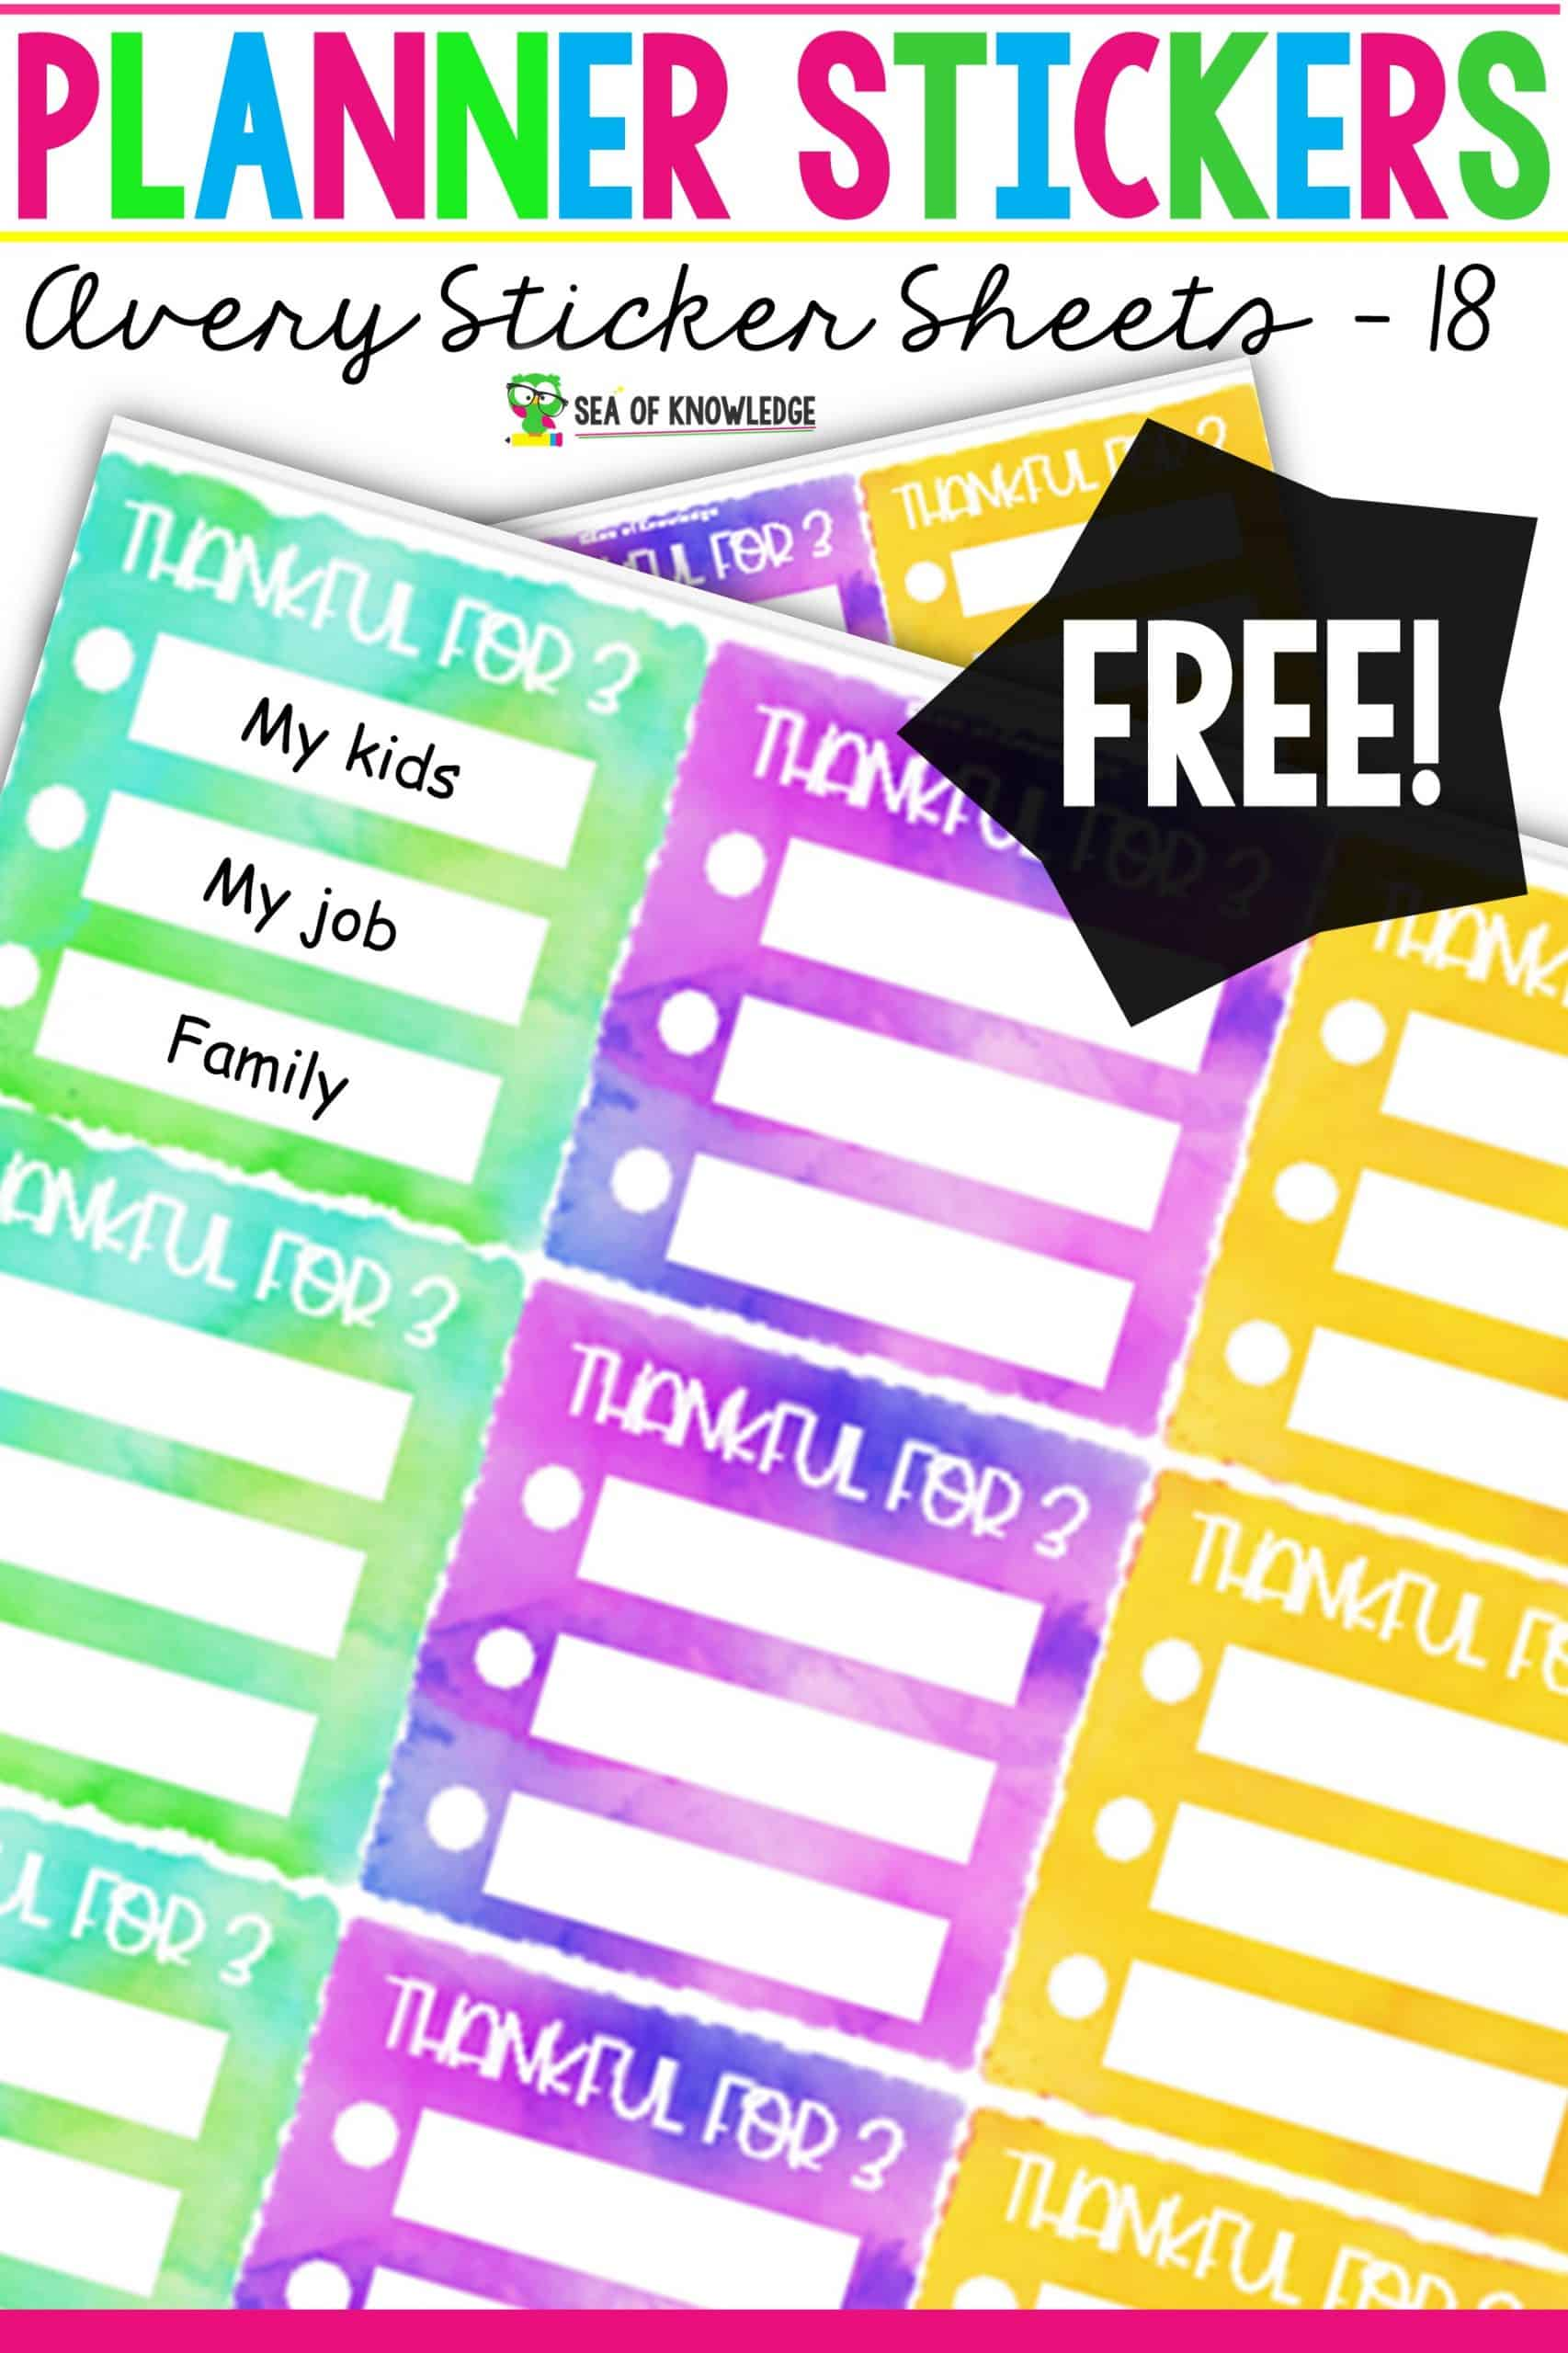 These Grateful Planner Stickers will be a perfect addition to your planners. Do you love using stickers? I do, and I created these super cute stickers to help you stay motivated and grateful everyday. Pick up your free set below!